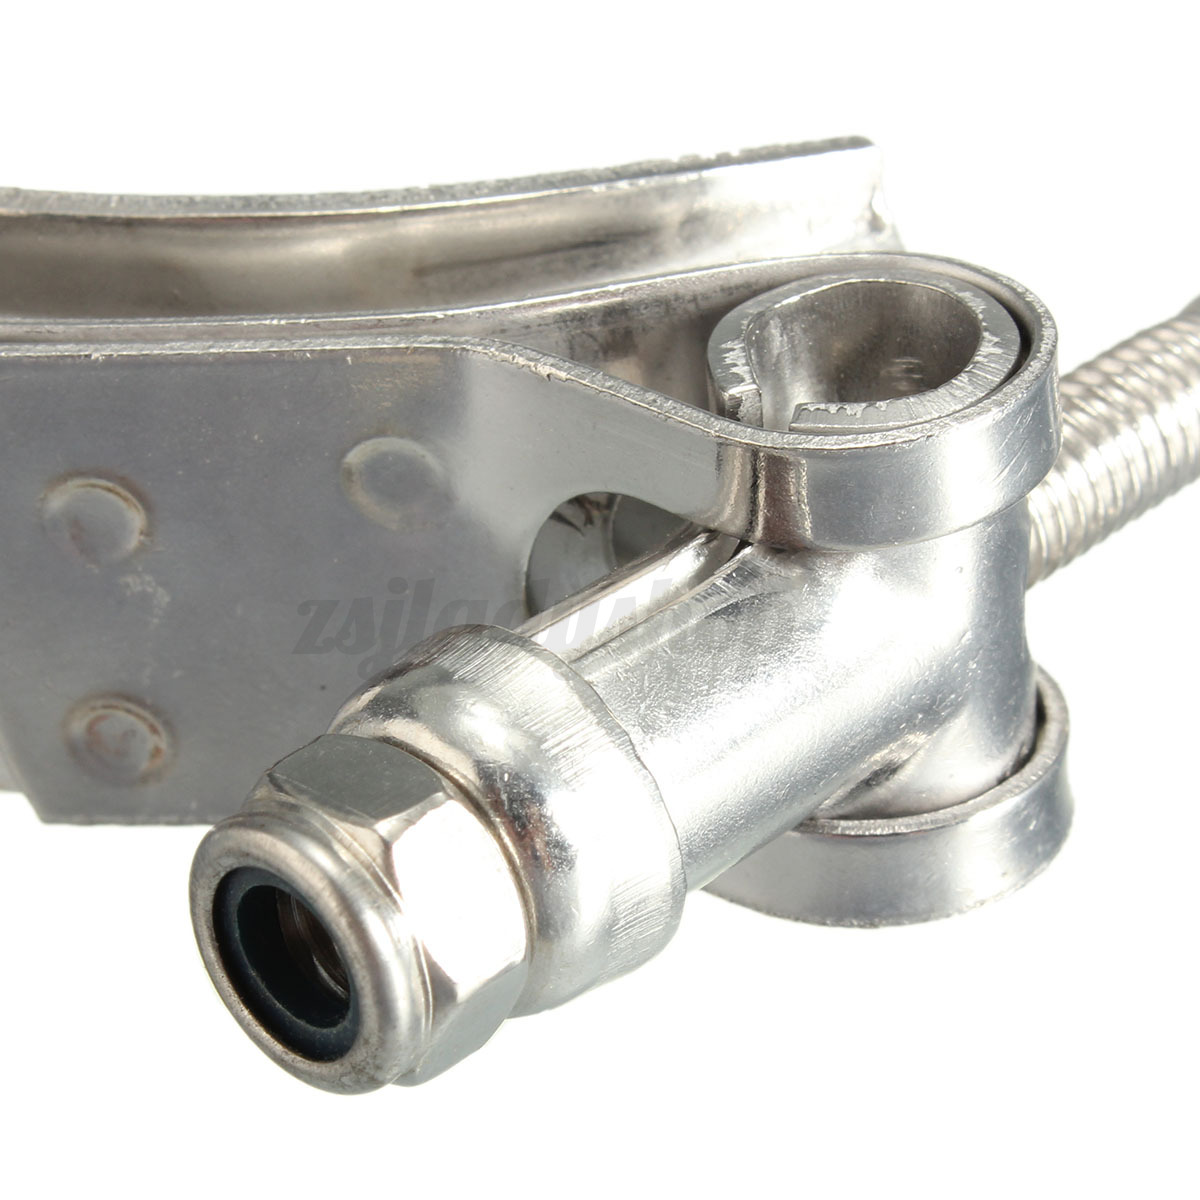 Turbo Exhaust Ring: 3'' Universal V-Band Downpipe Intercooler Turbo Exhaust